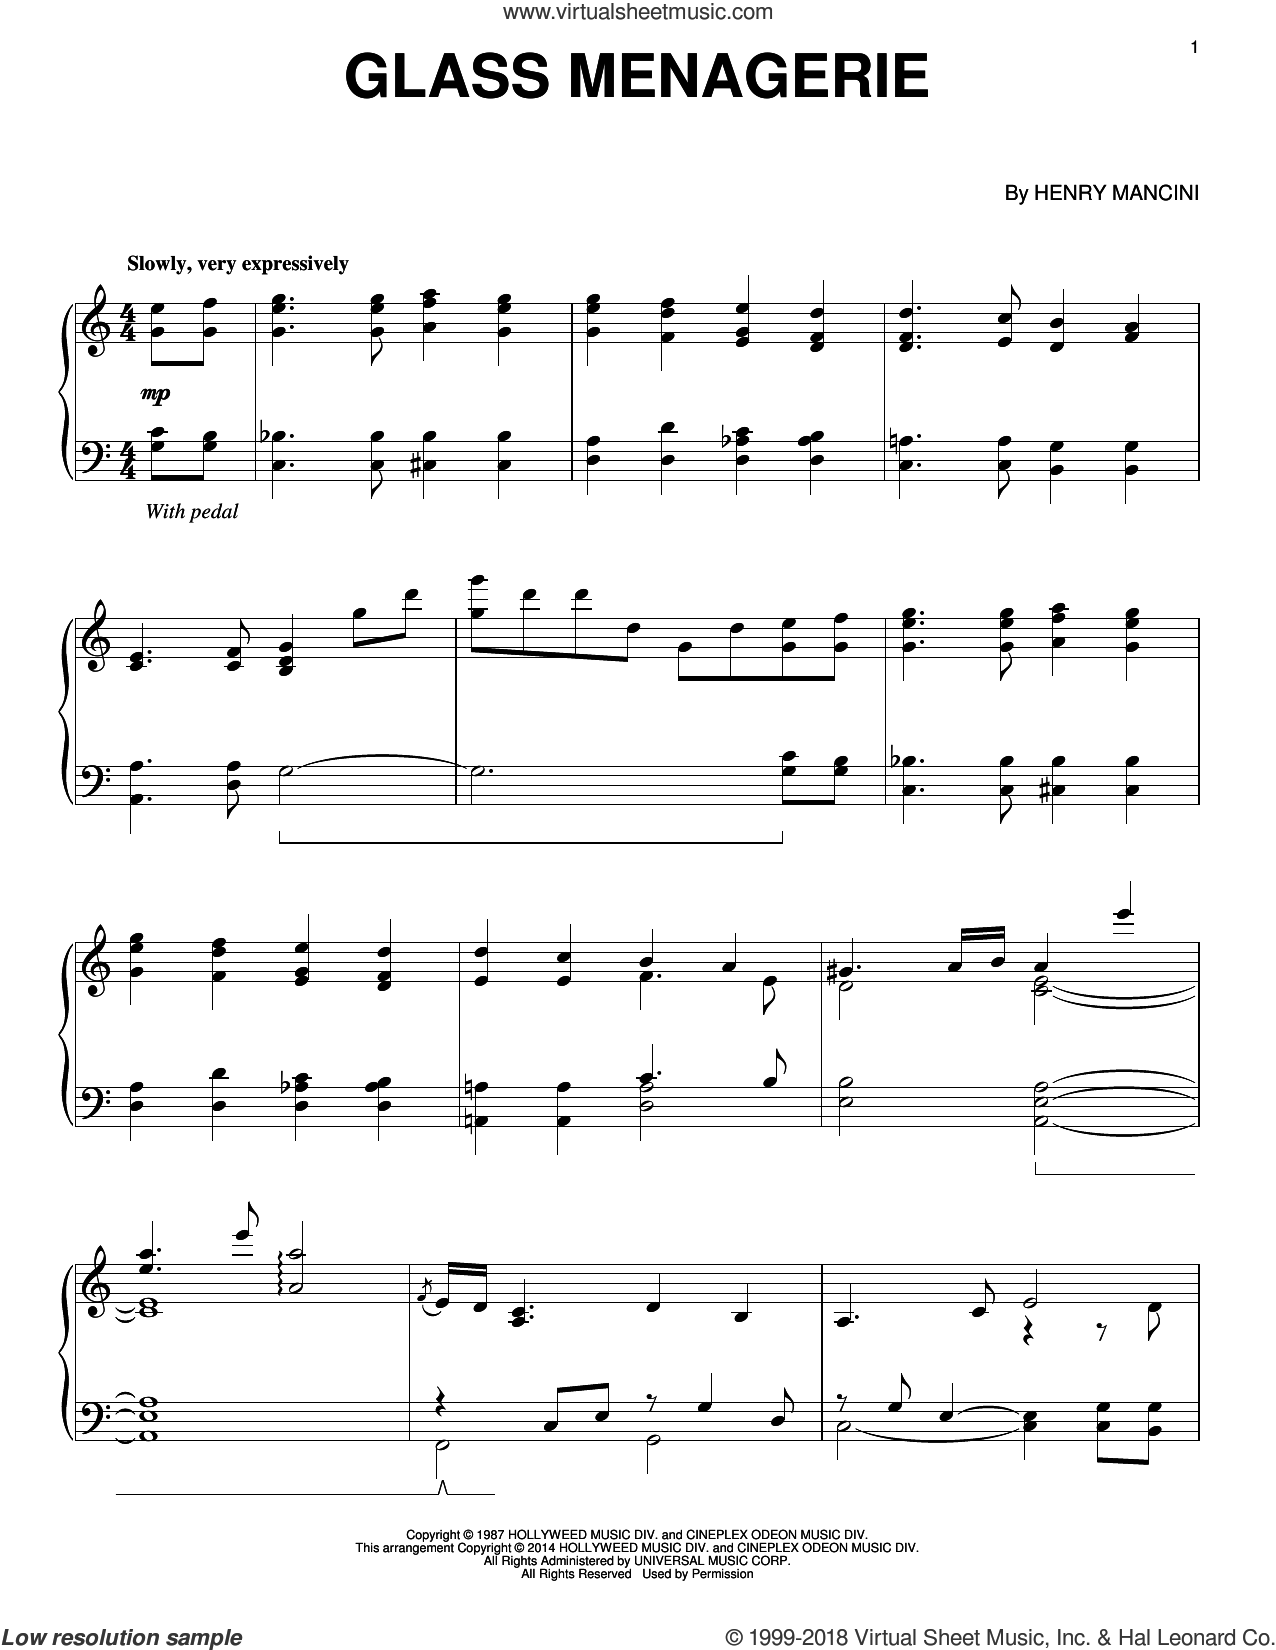 Glass Menagerie sheet music for piano solo by Henry Mancini, intermediate skill level